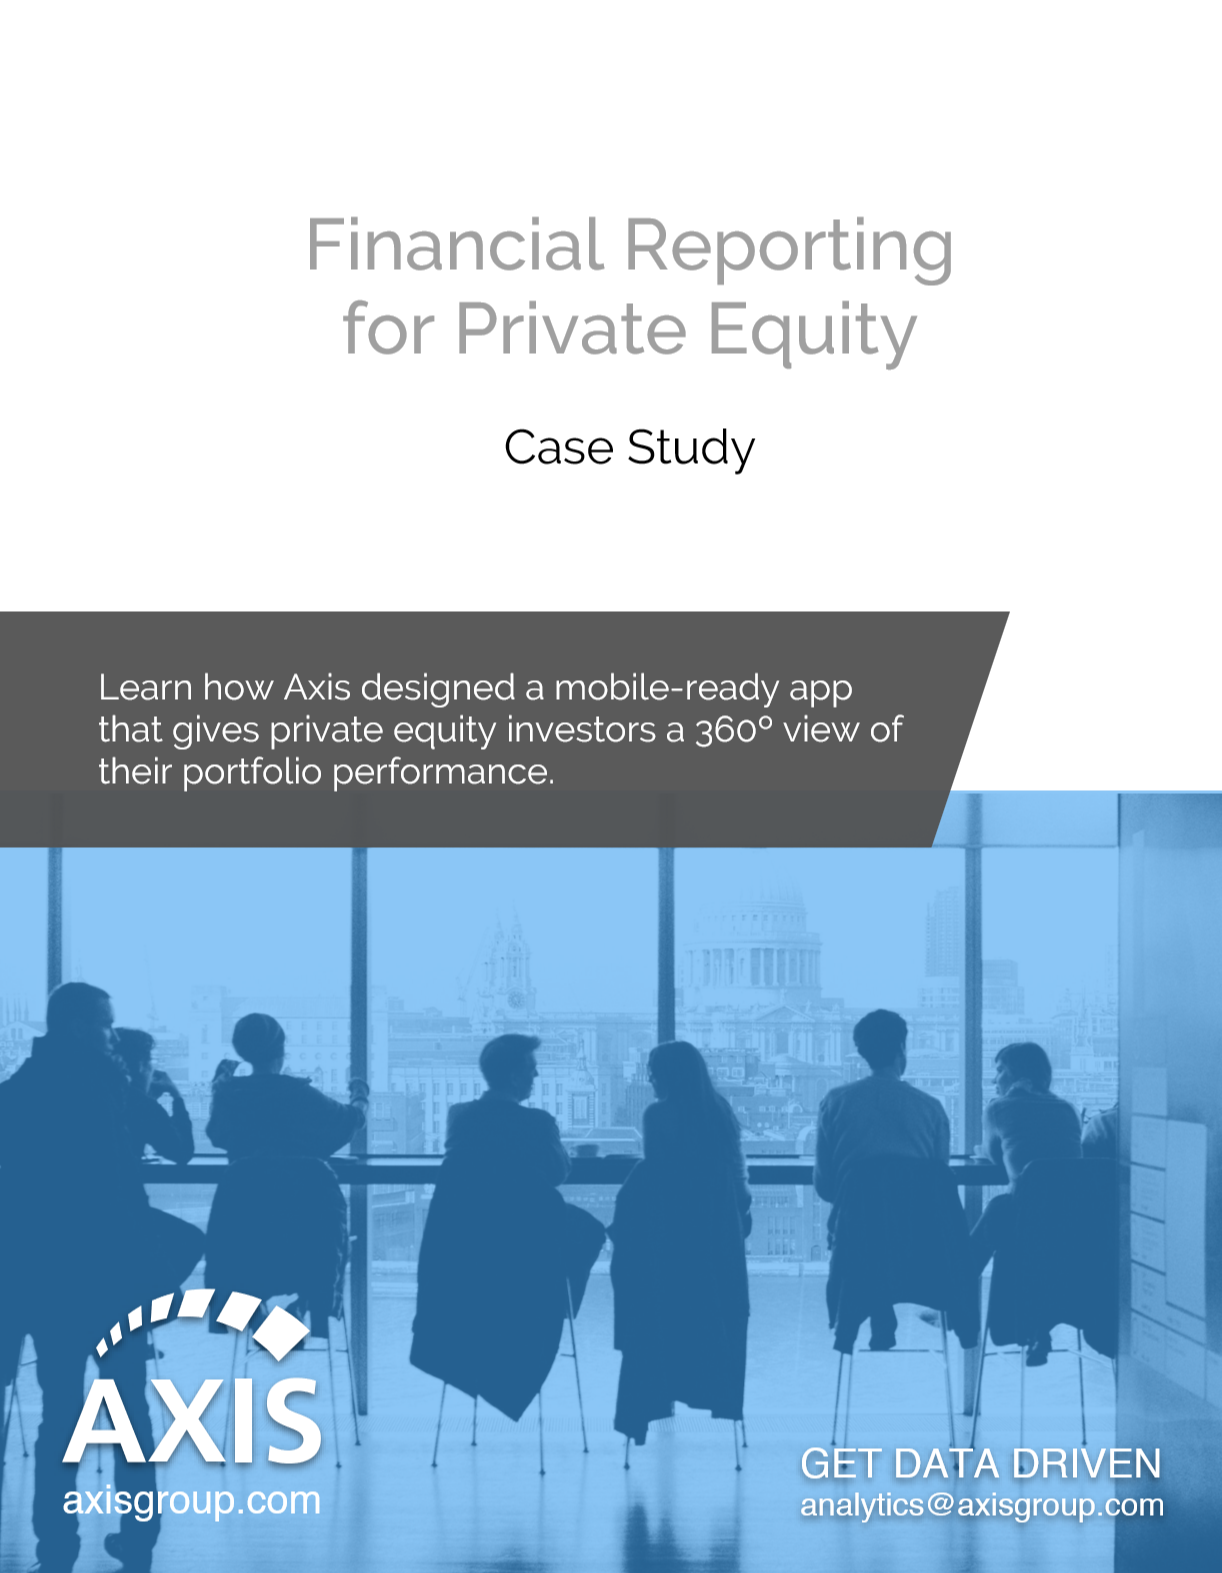 FinancialReporting1